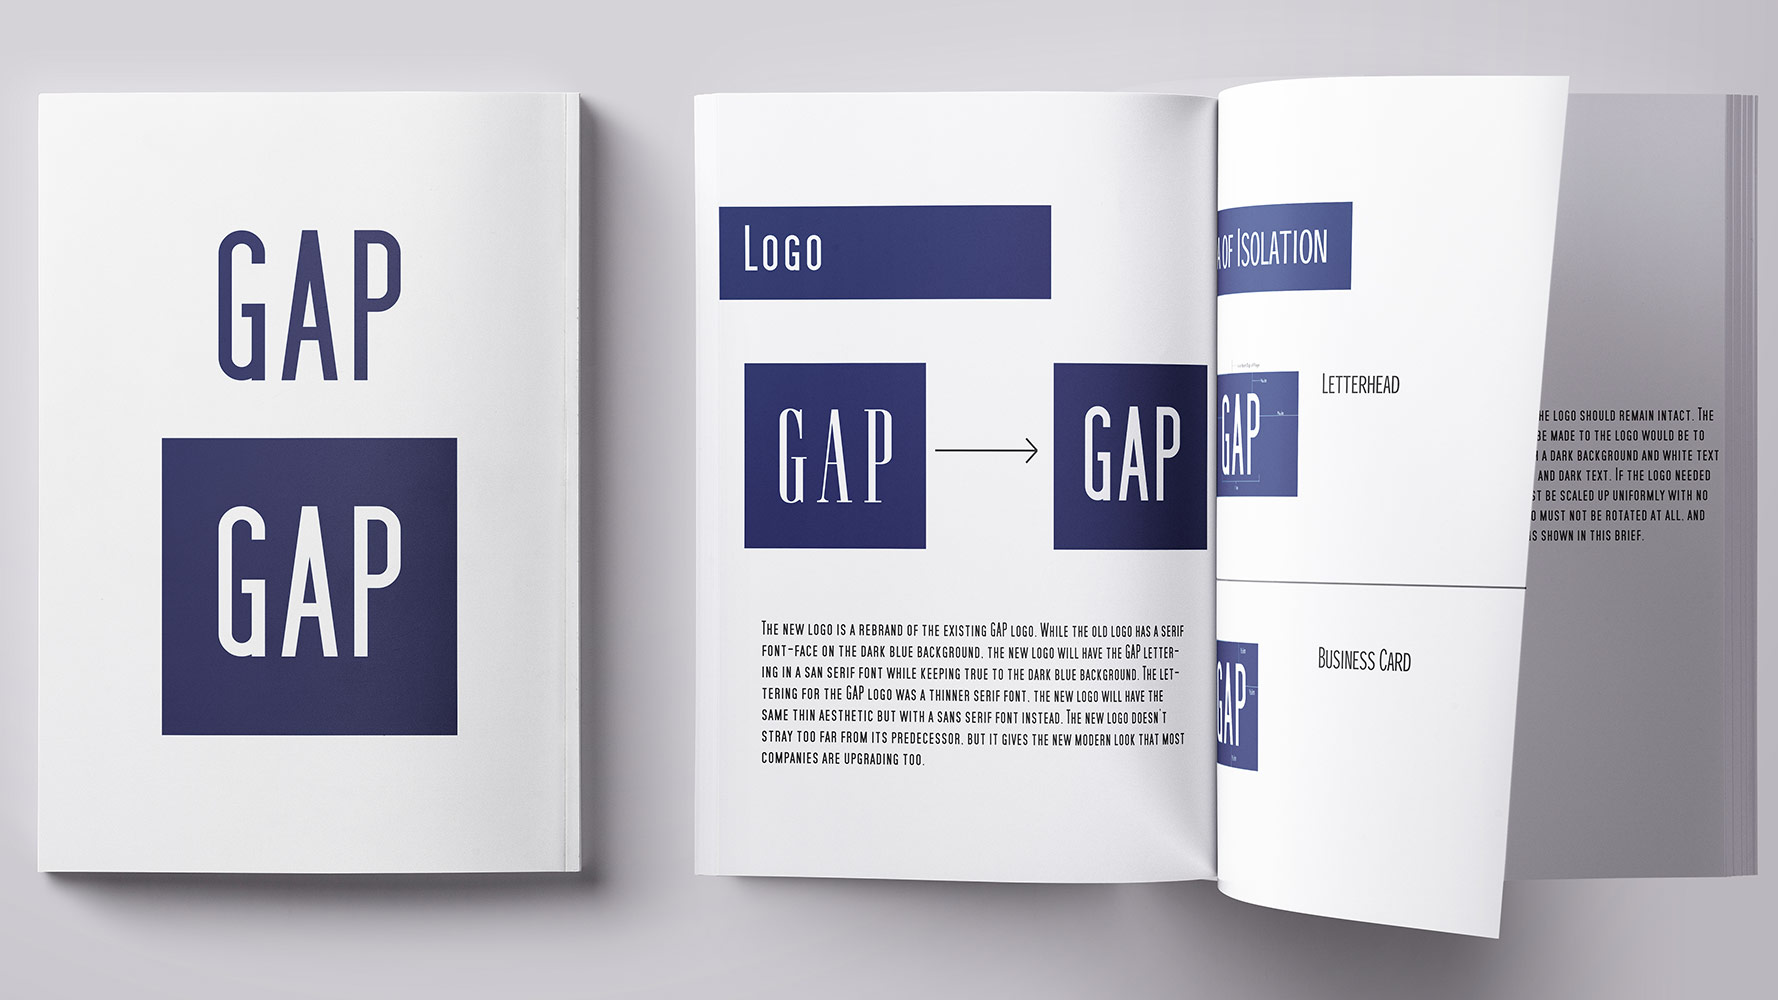 images/GAP Logo Redesign